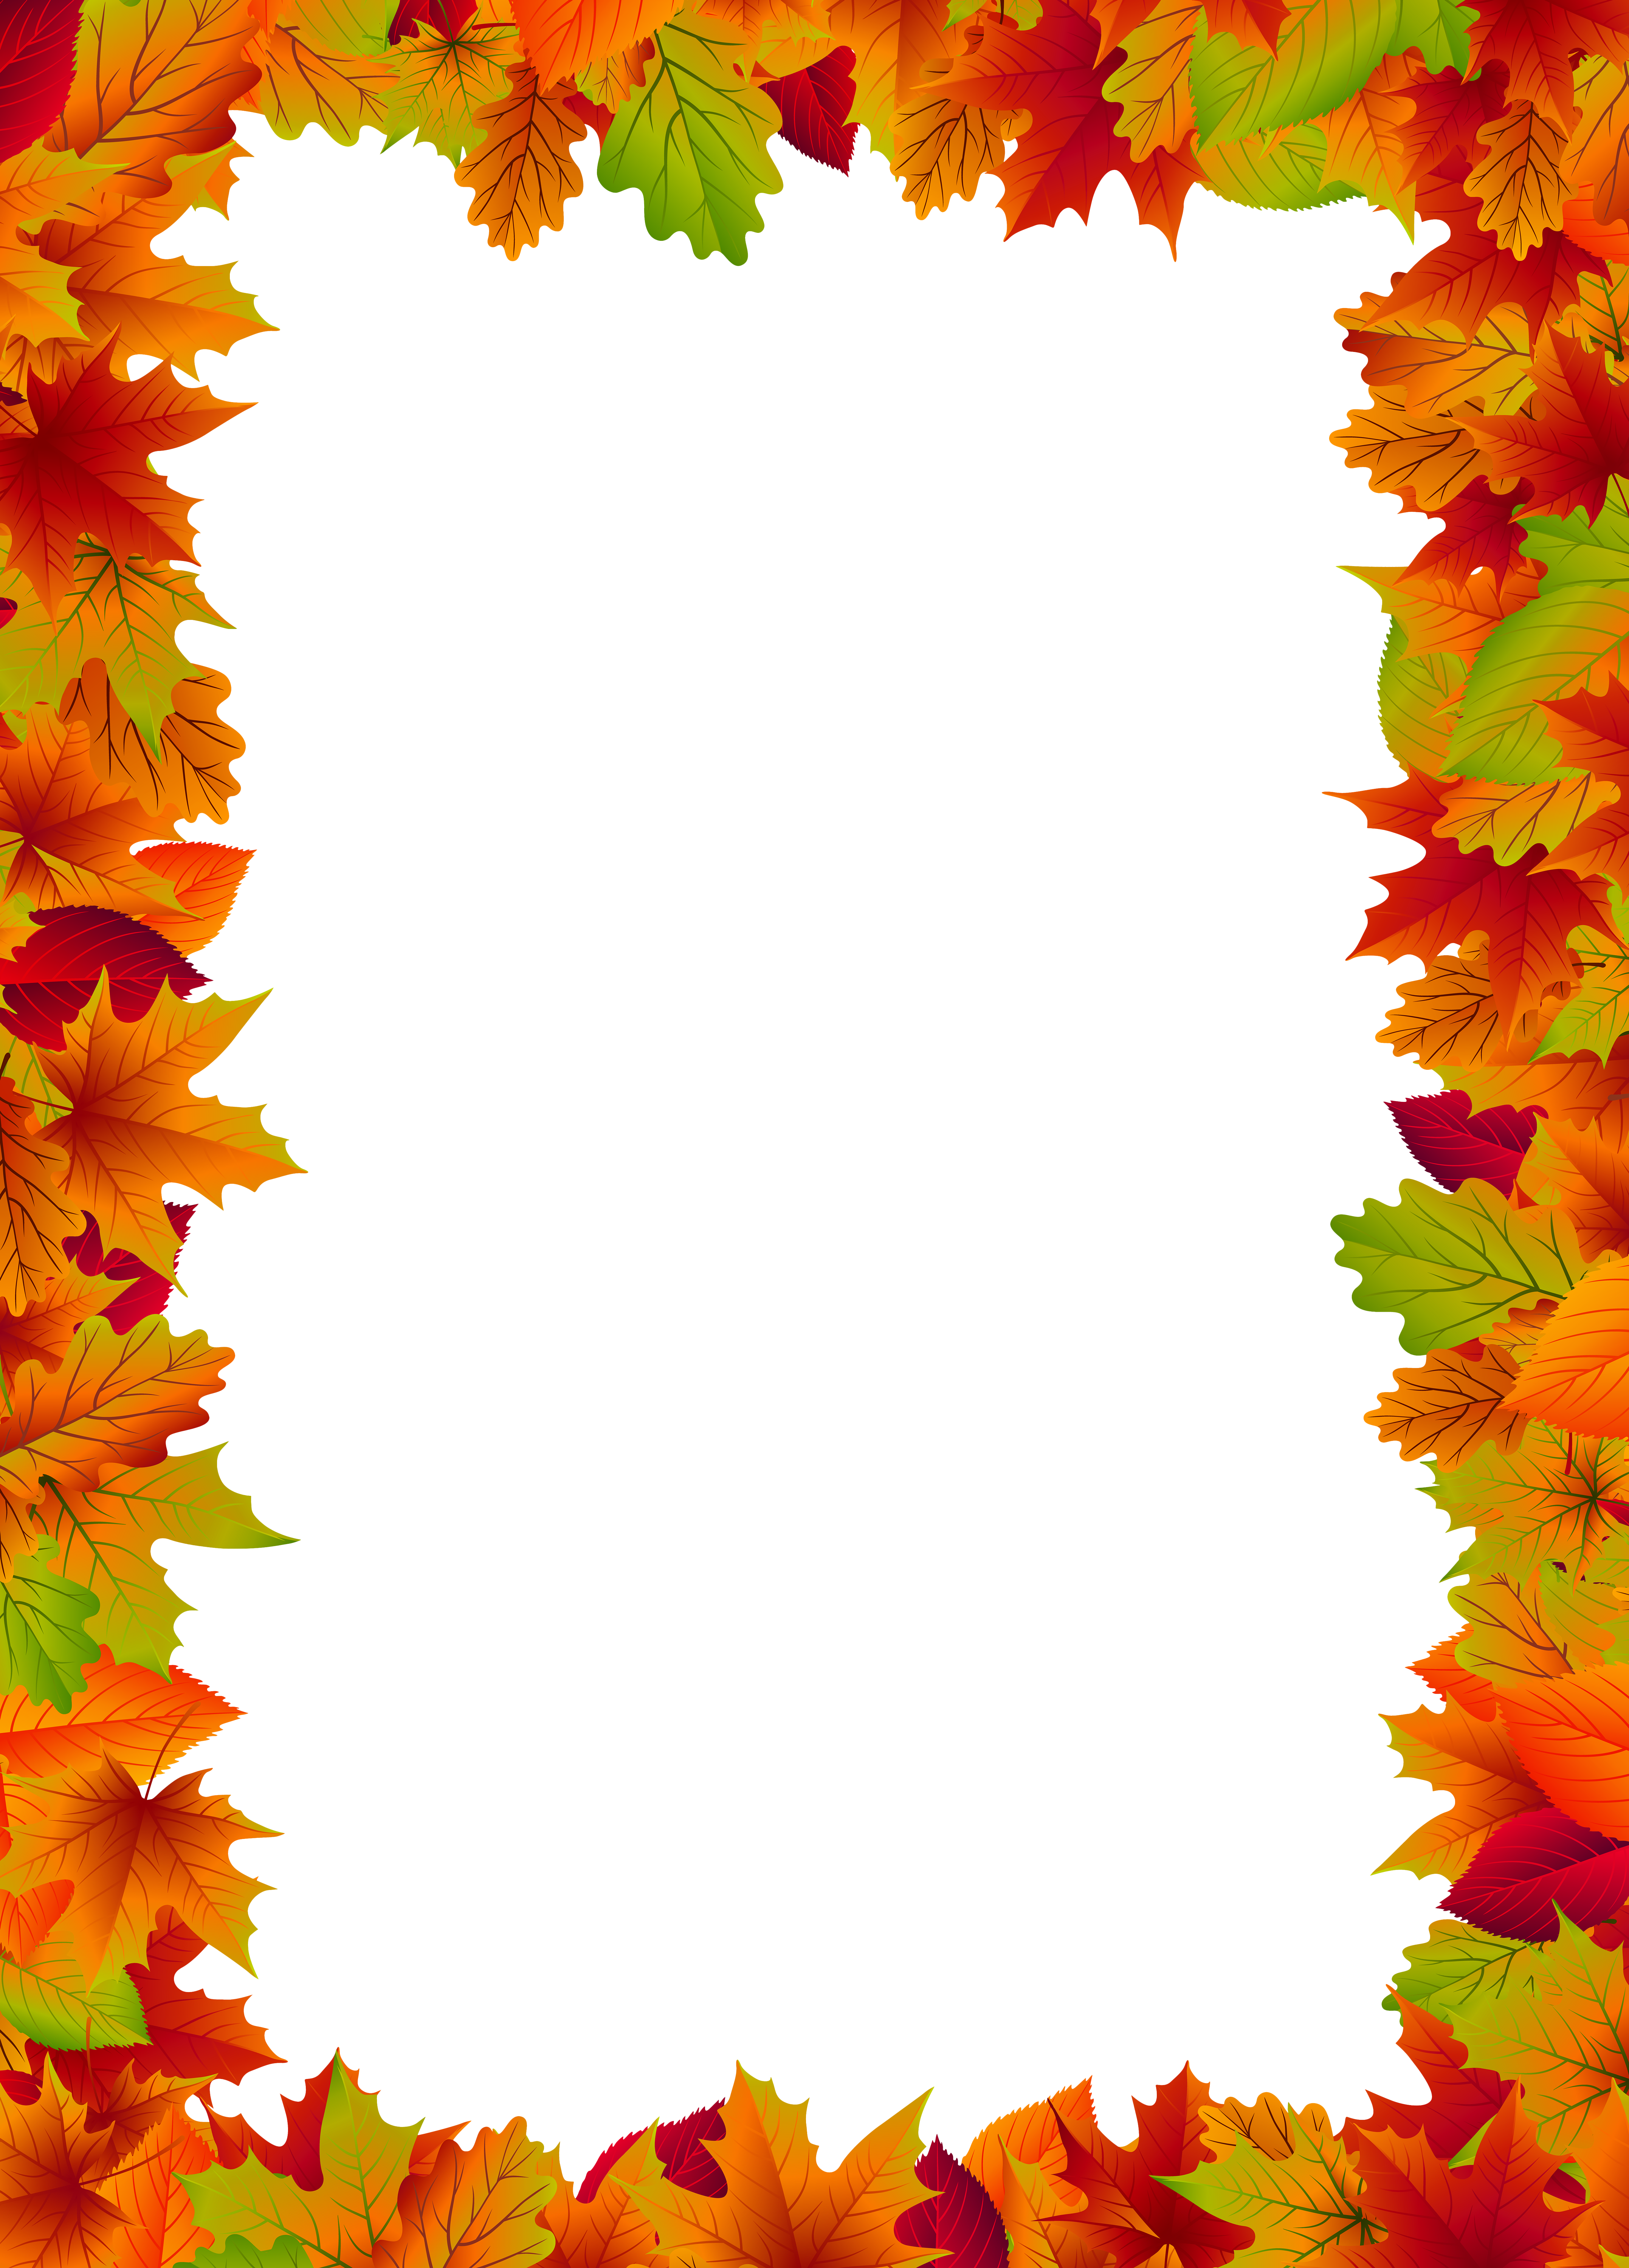 clipart free stock Border frame png clip. Fall borders clipart.